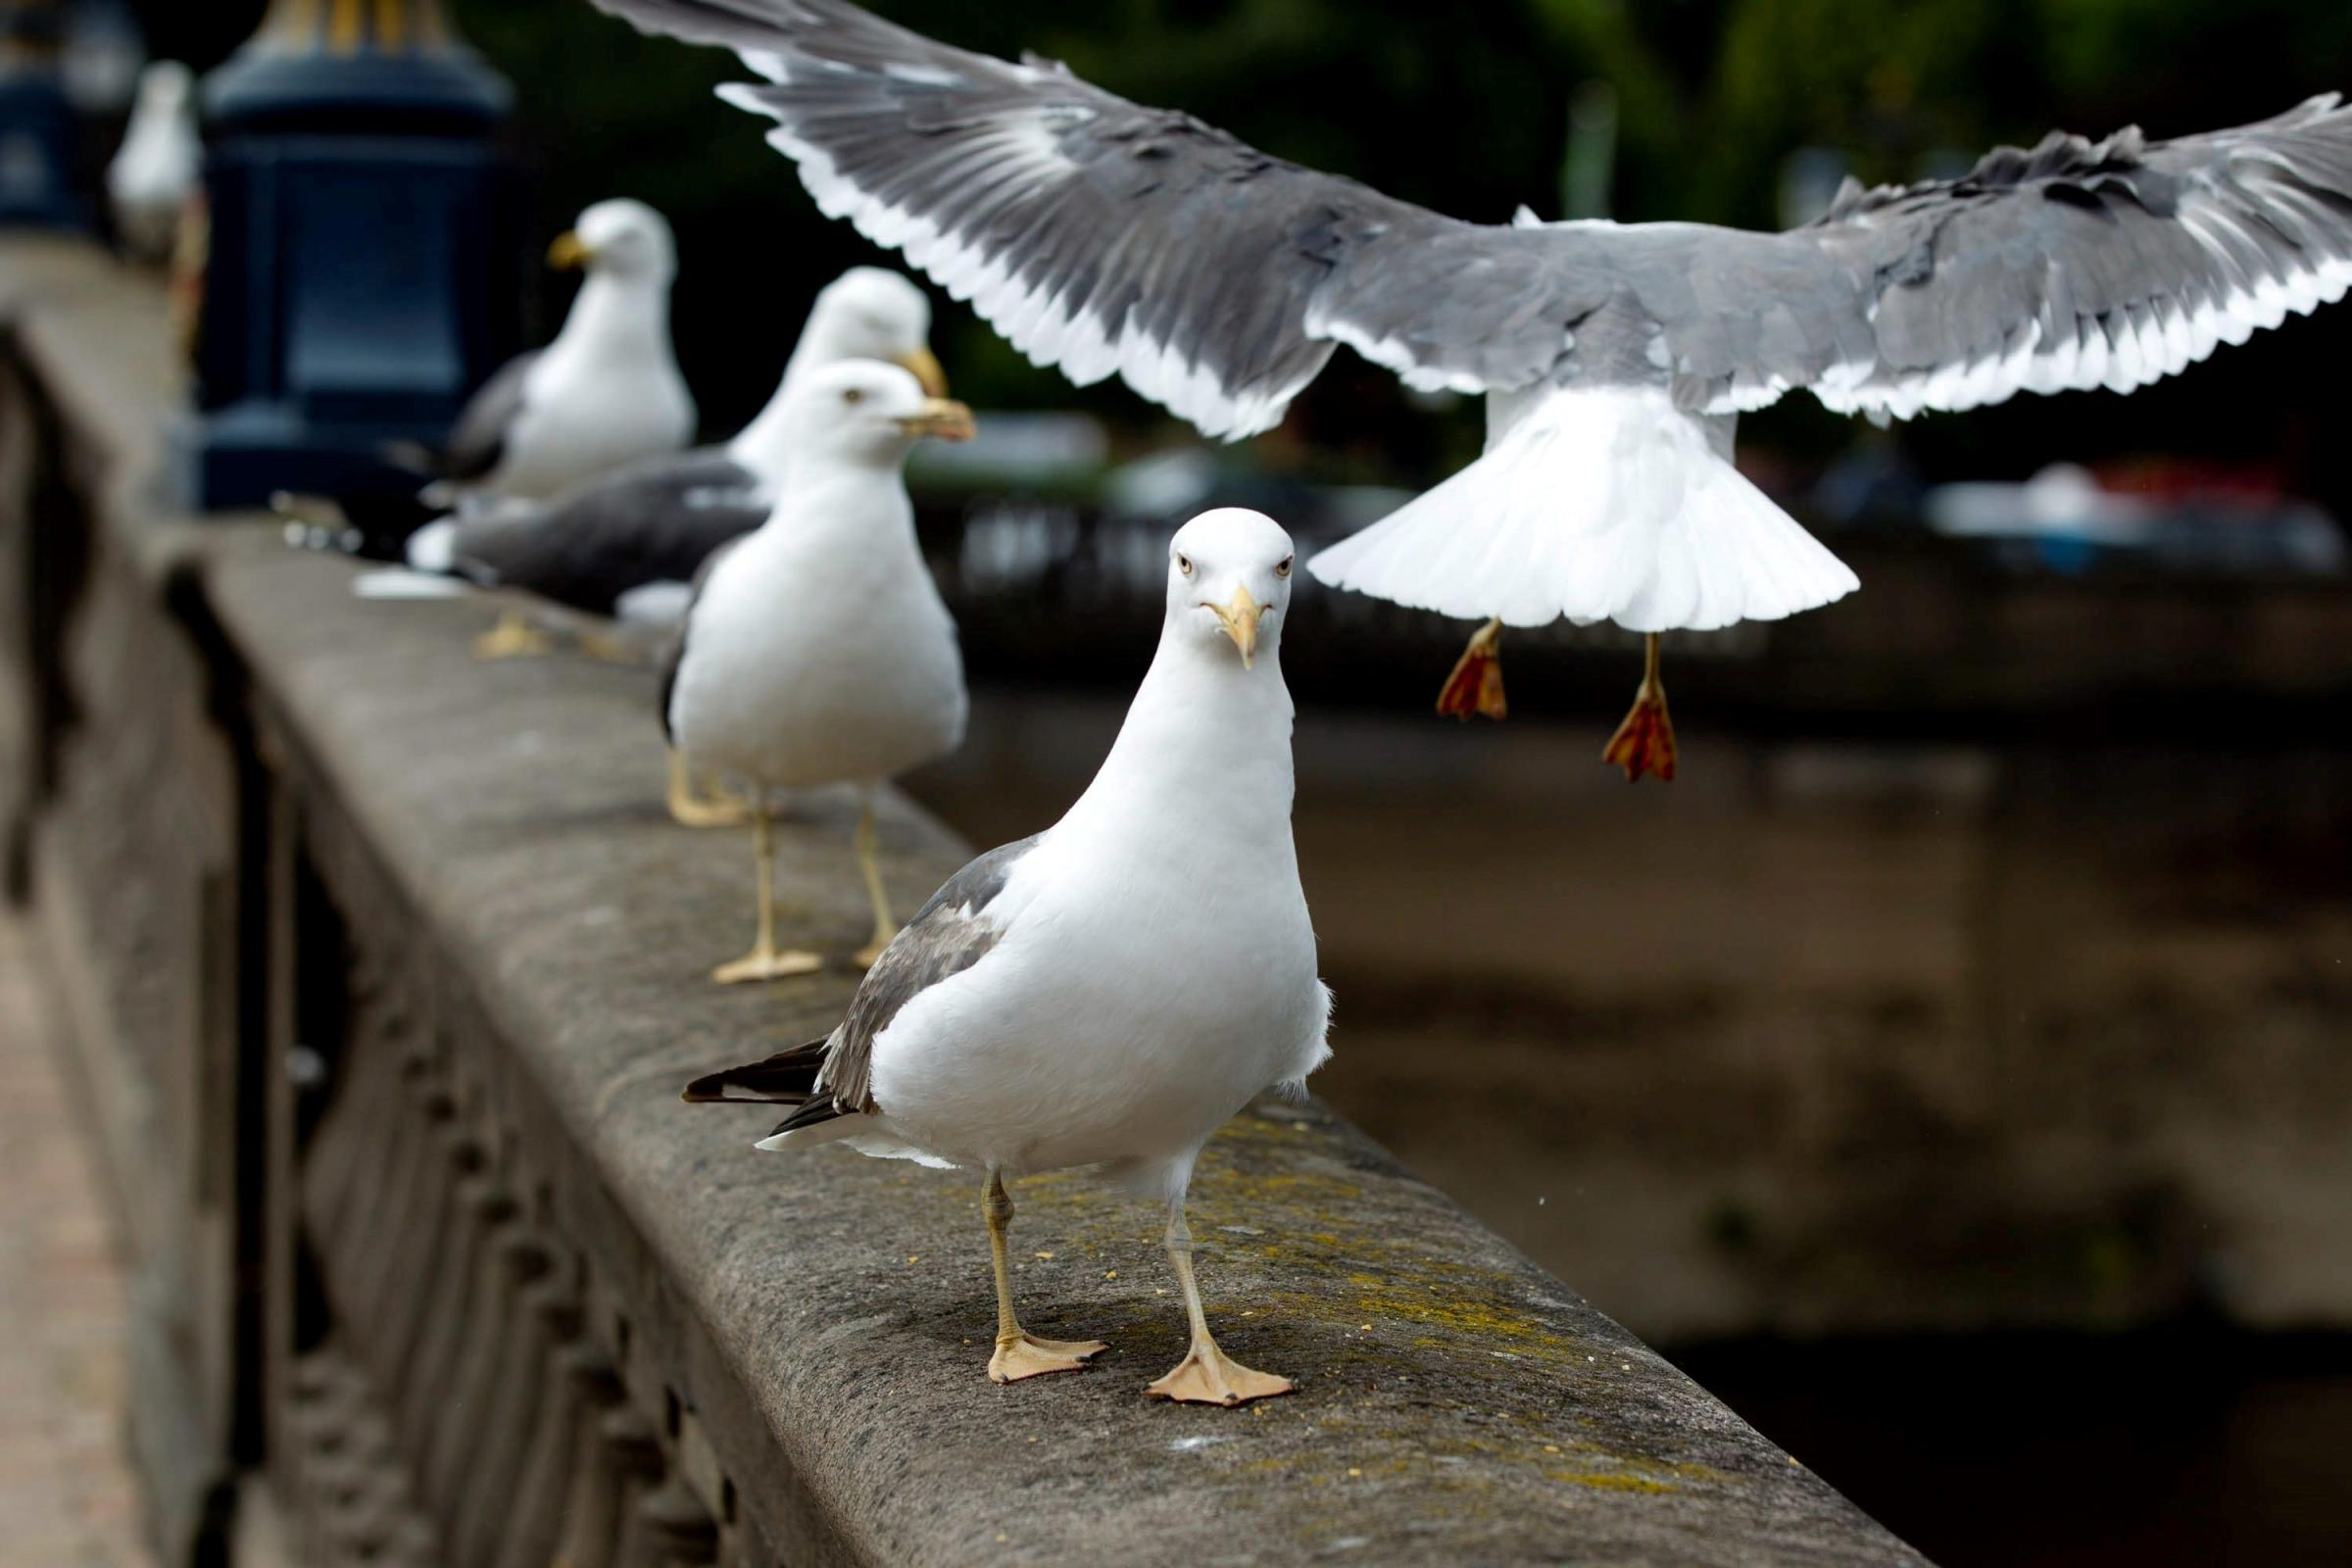 Seagulls: Winged menaces with a personal grudge or just hungry birds?